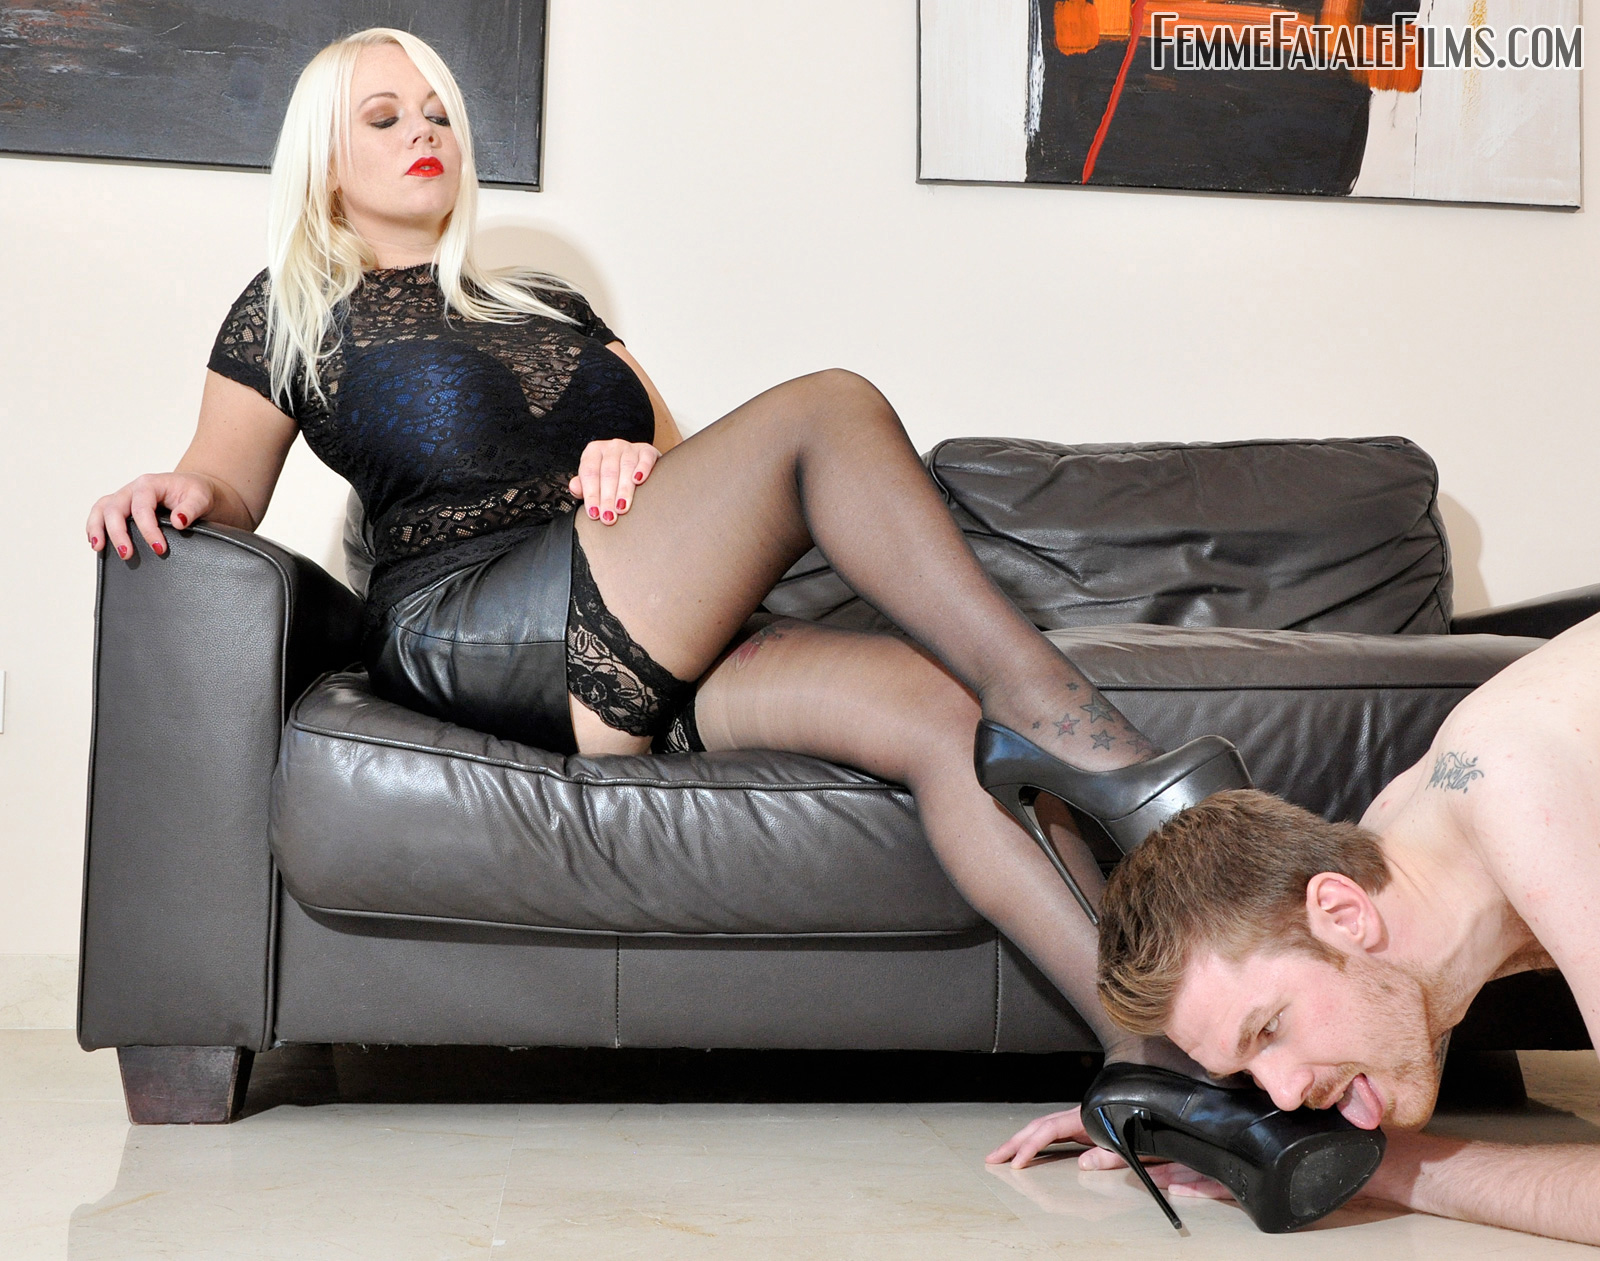 Watch or Download - Femmefatalefilms - Mistress Heather - Between My Toes - worship, high heels, leather, nipple - Release [13-03-2017]